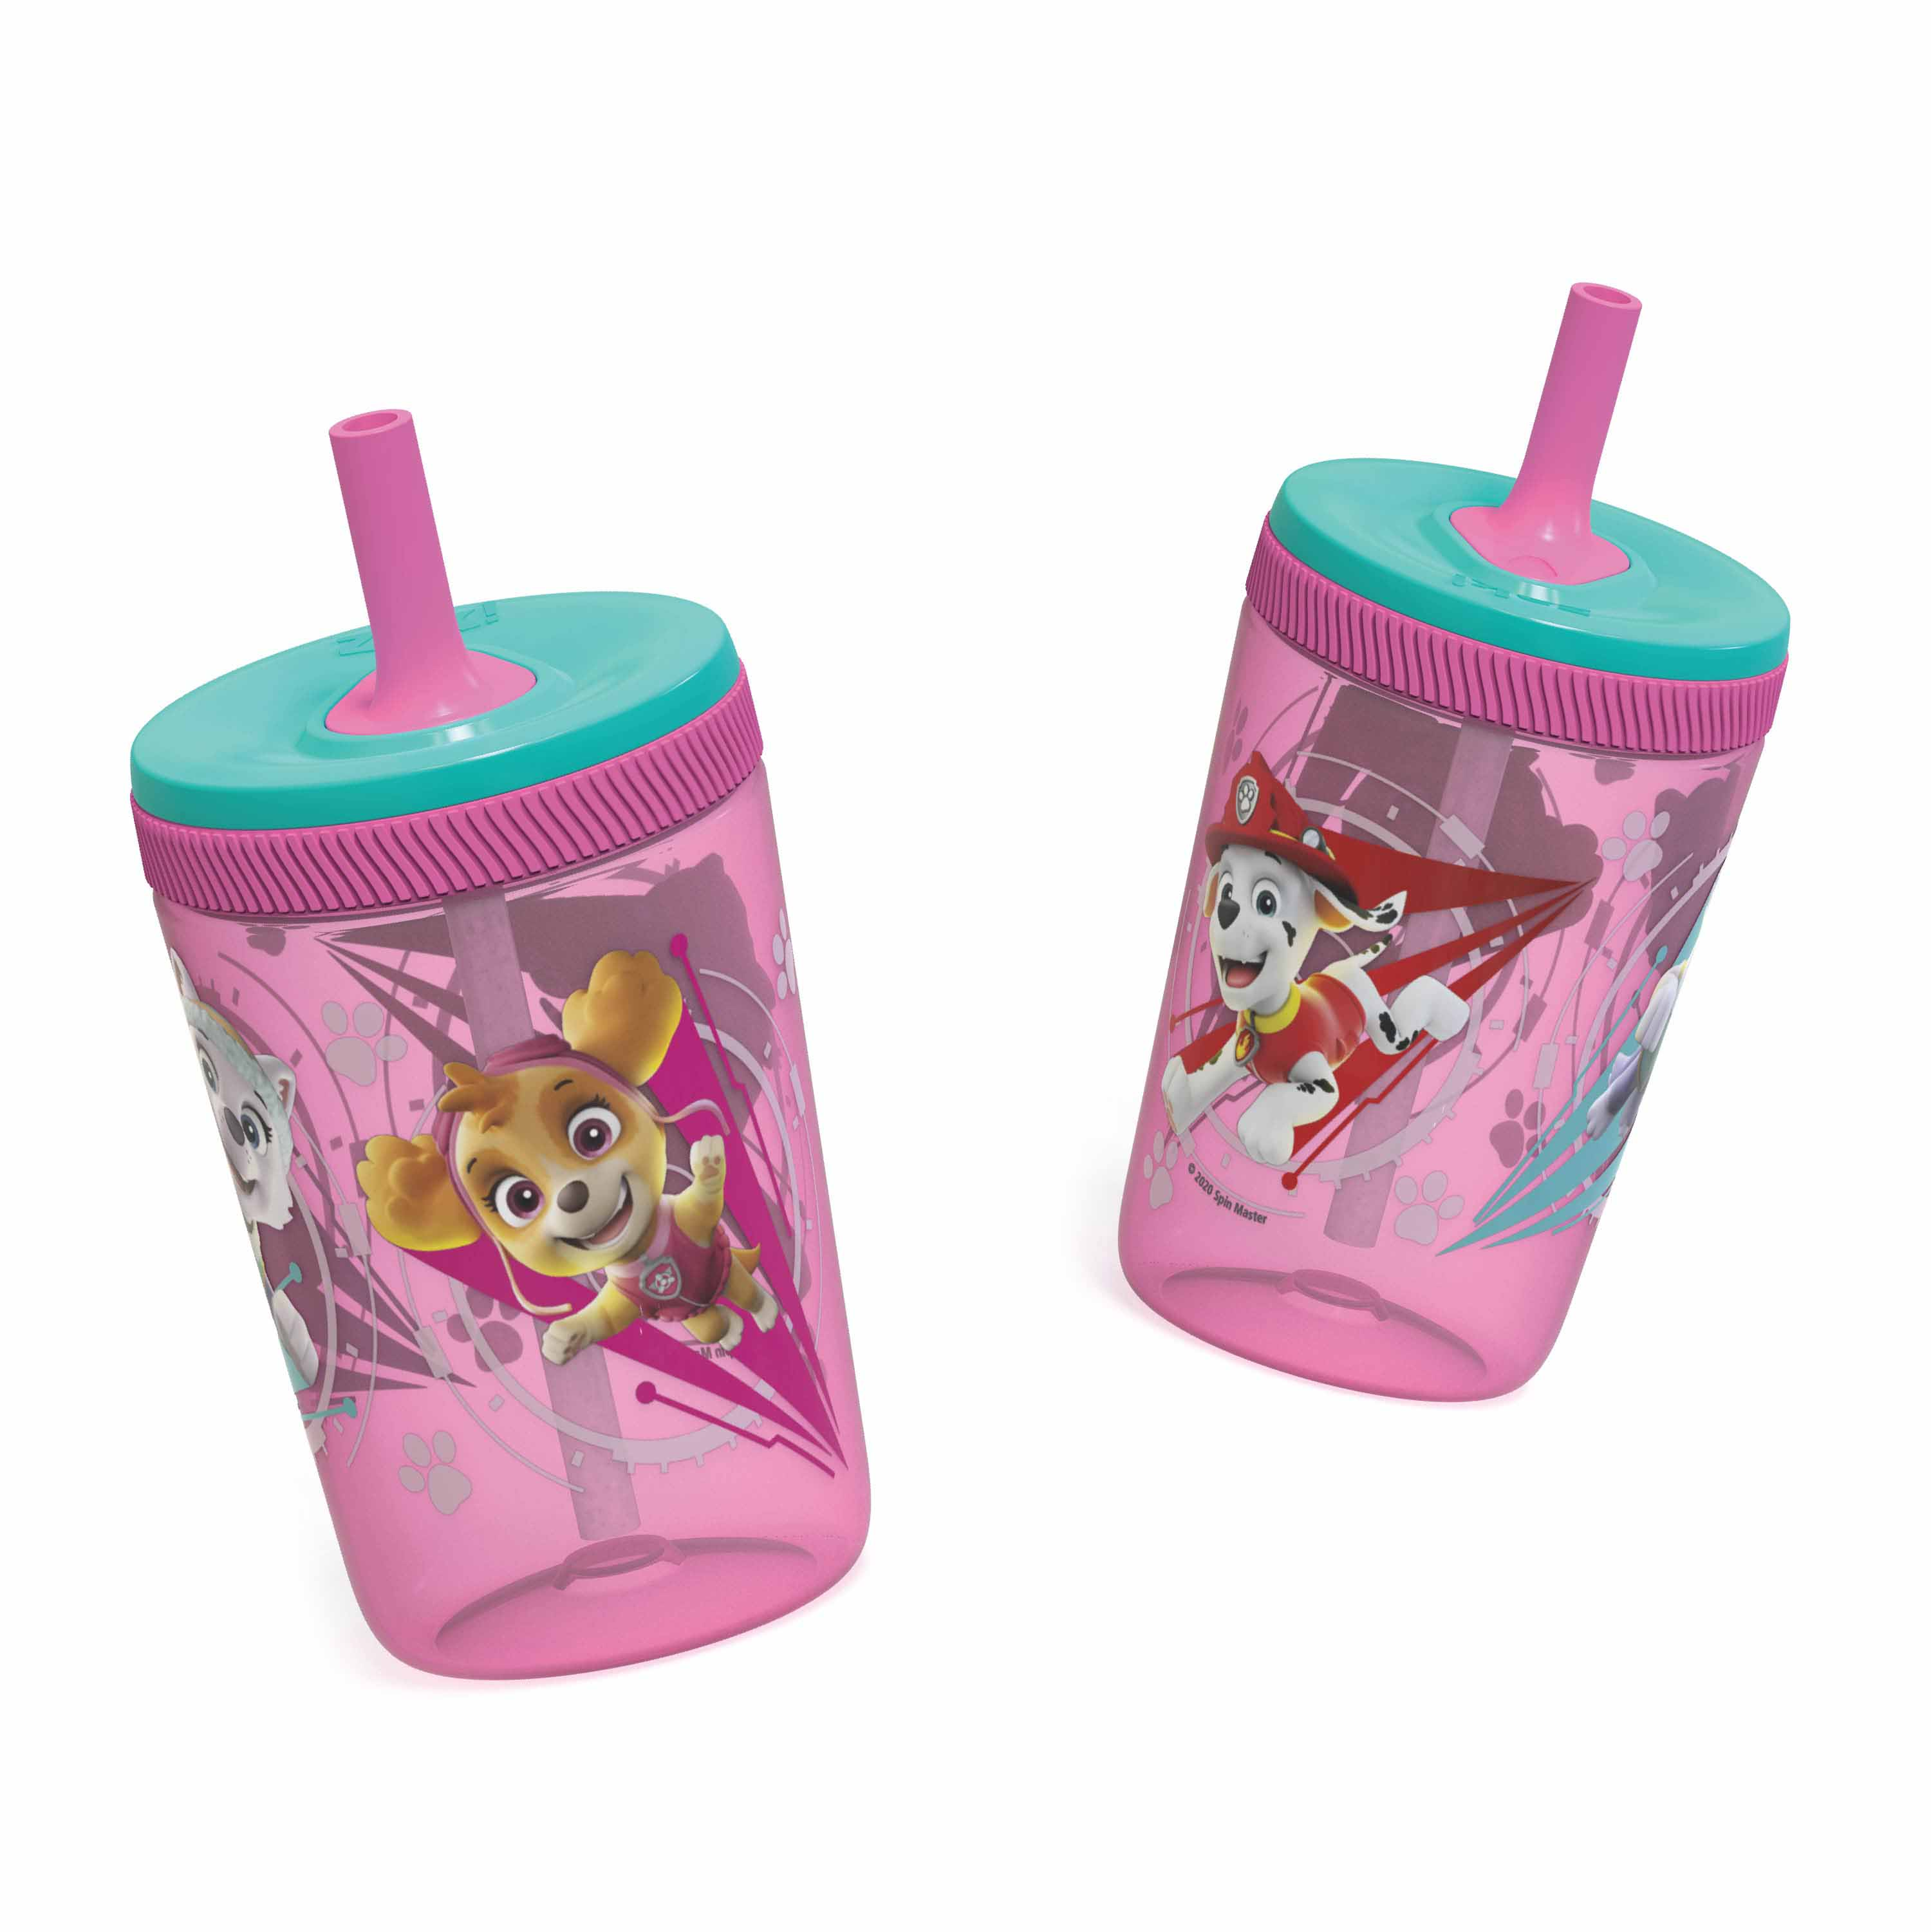 Paw Patrol 15  ounce Plastic Tumbler with Lid and Straw, Marshall and Skye, 2-piece set slideshow image 7